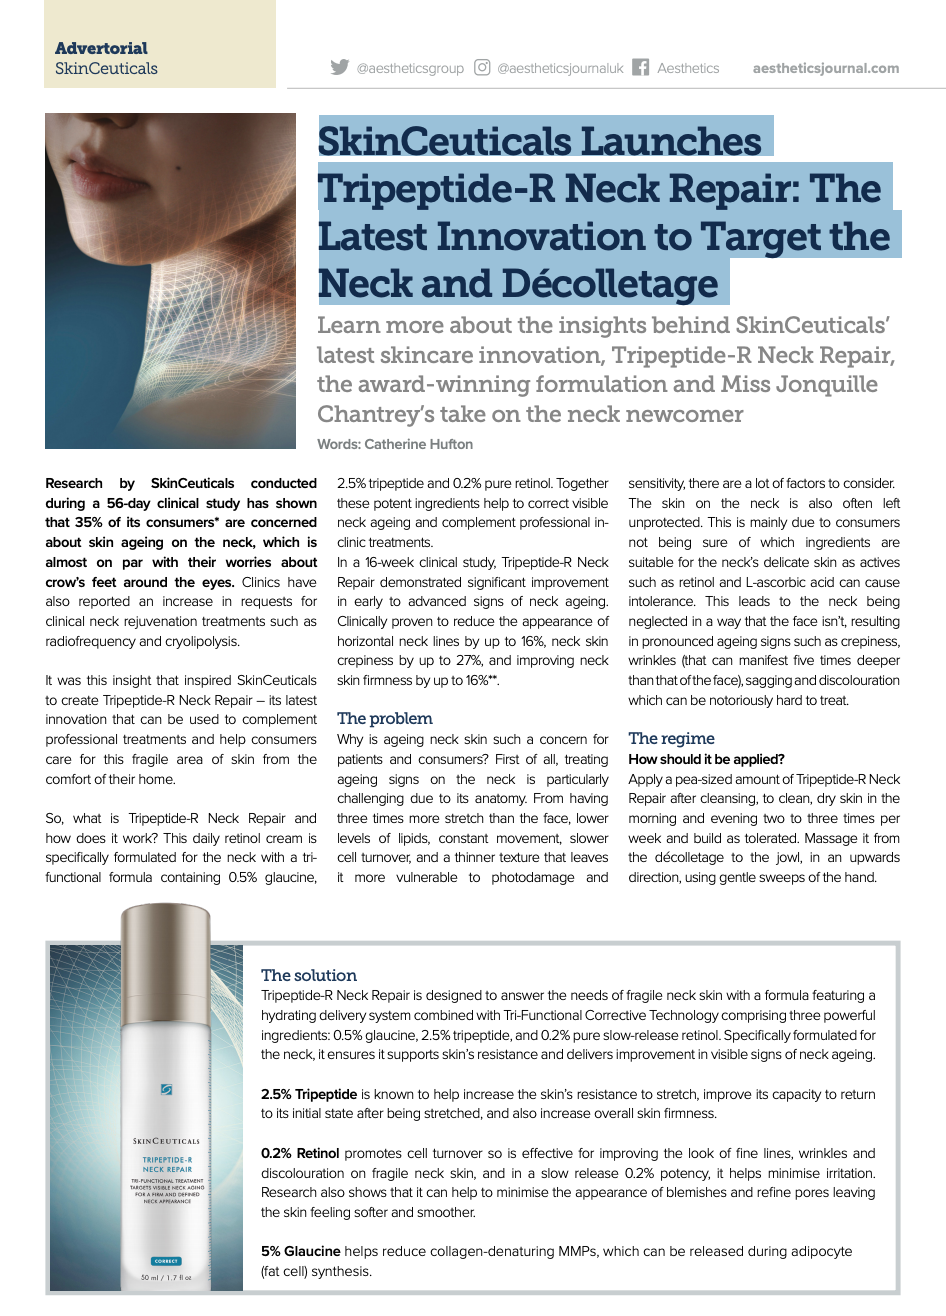 SkinCeuticals Launches Tripeptide-R Neck Repair: The Latest Innovation to Target the Neck and Décolletage, Aesthetics Journal